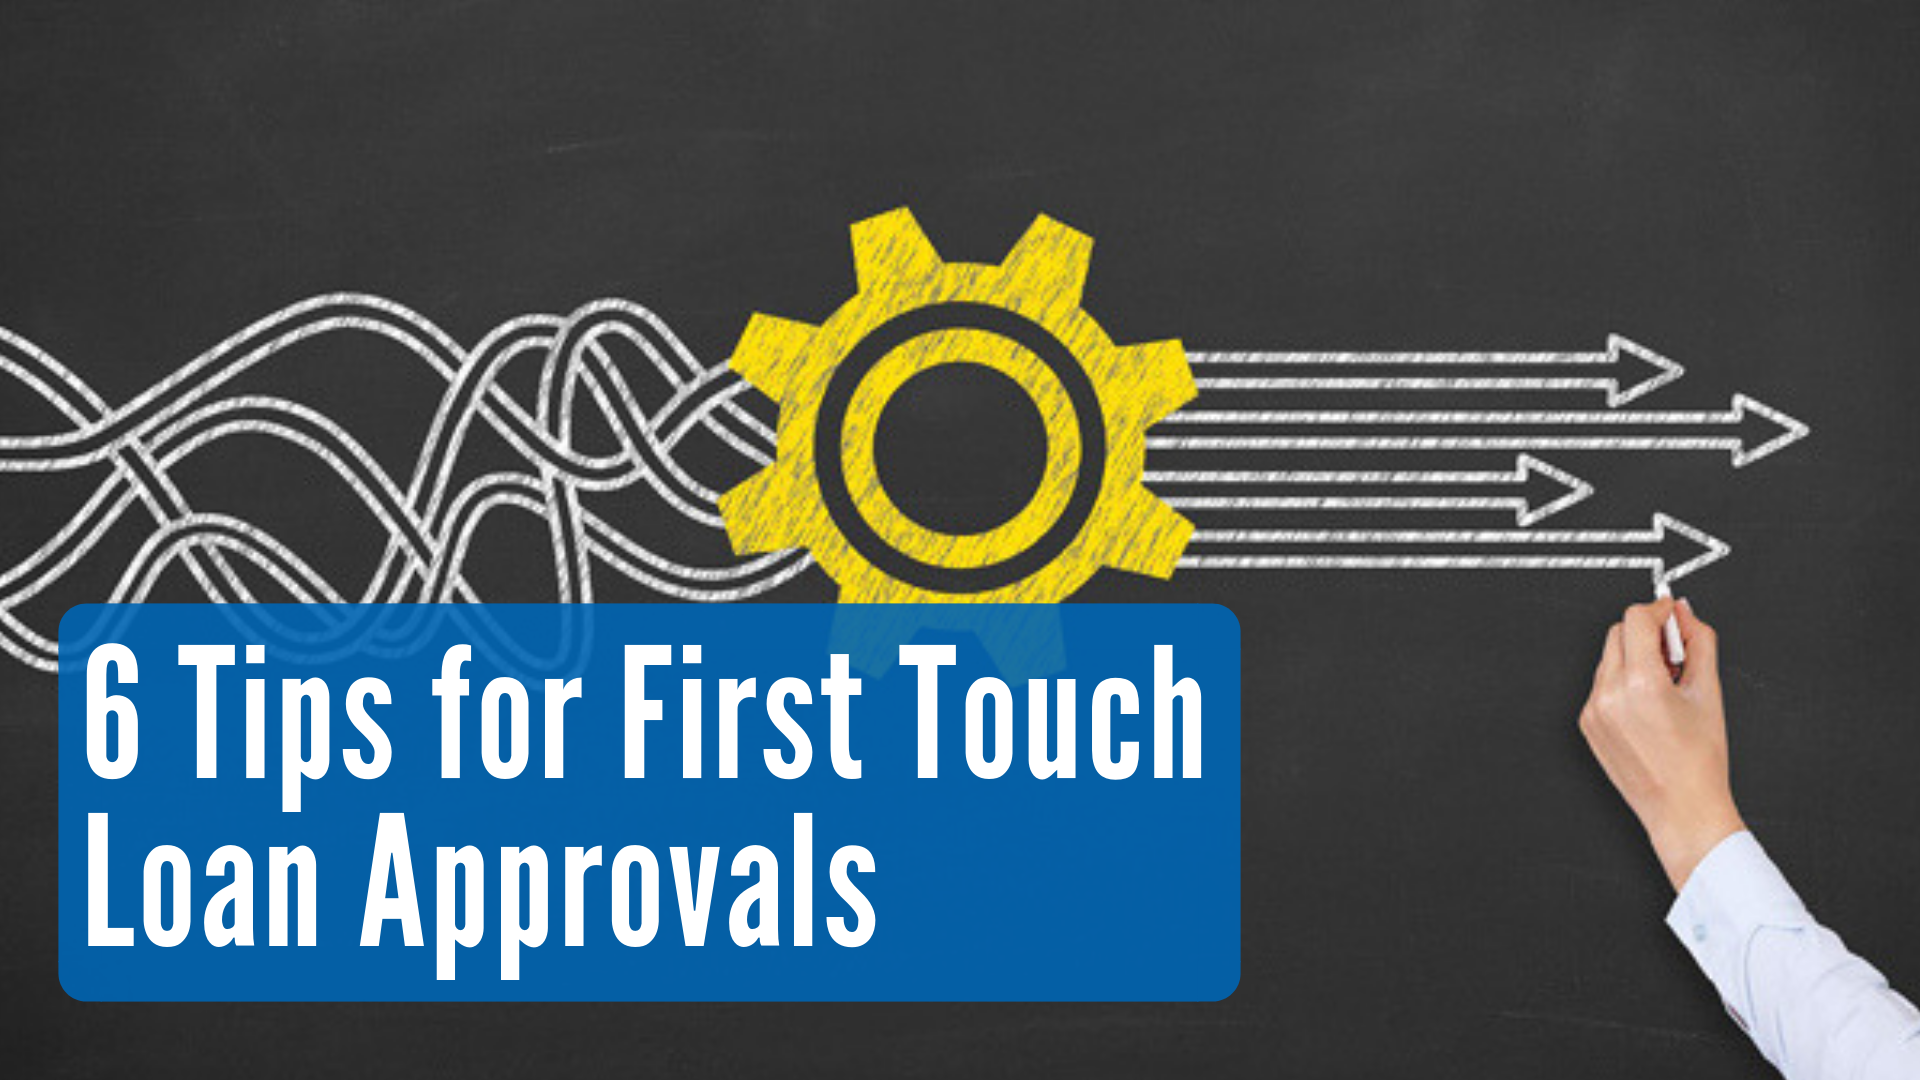 6 Tips for First Touch Loan Approvals